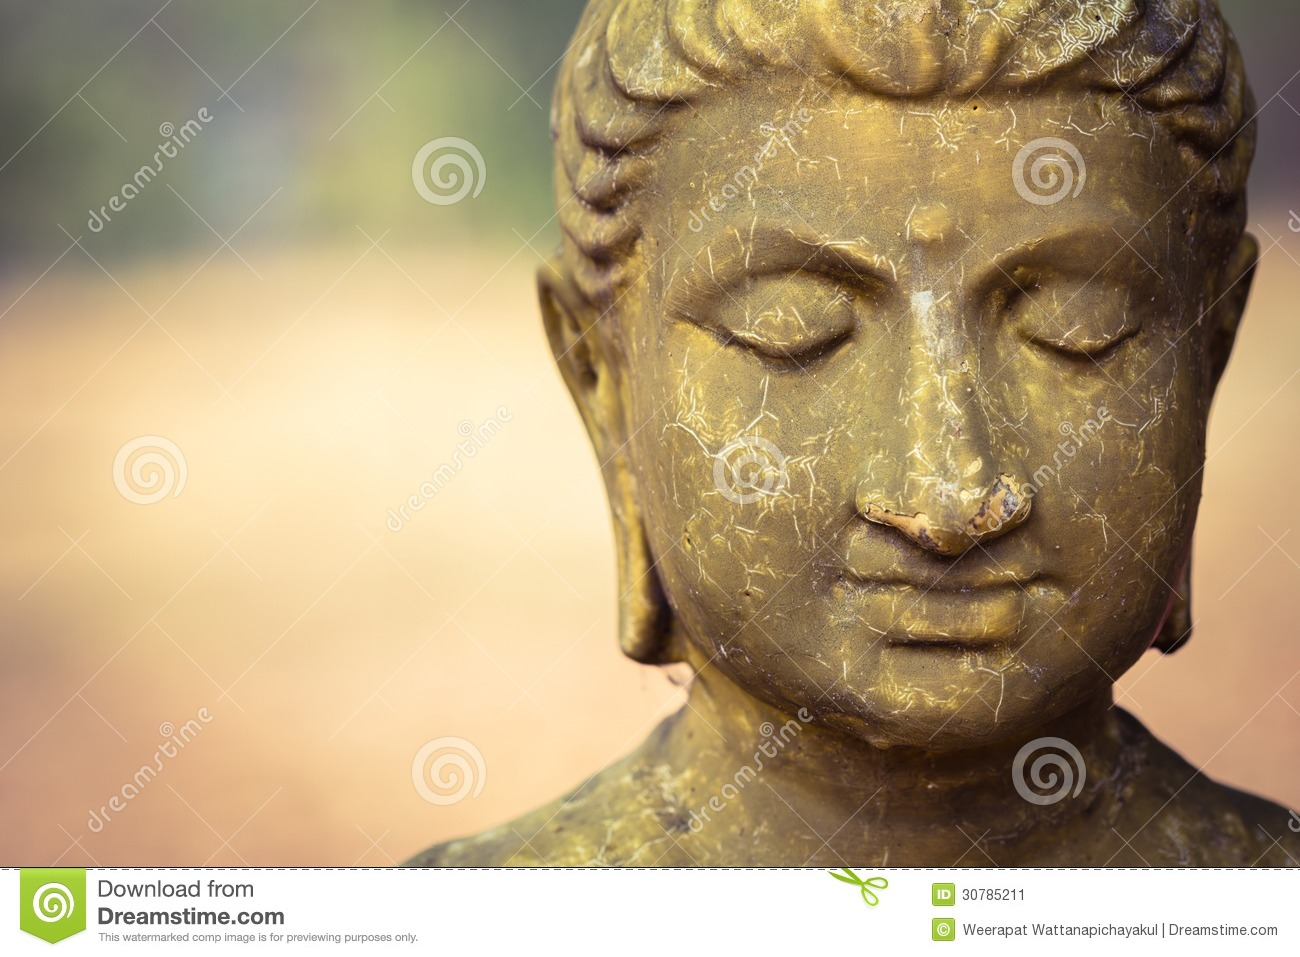 herndon buddhist singles They're fucking helpful for explaining to normies just why islam isn't like any other religion on earth  single one of them die  twitter zen zen buddhism.